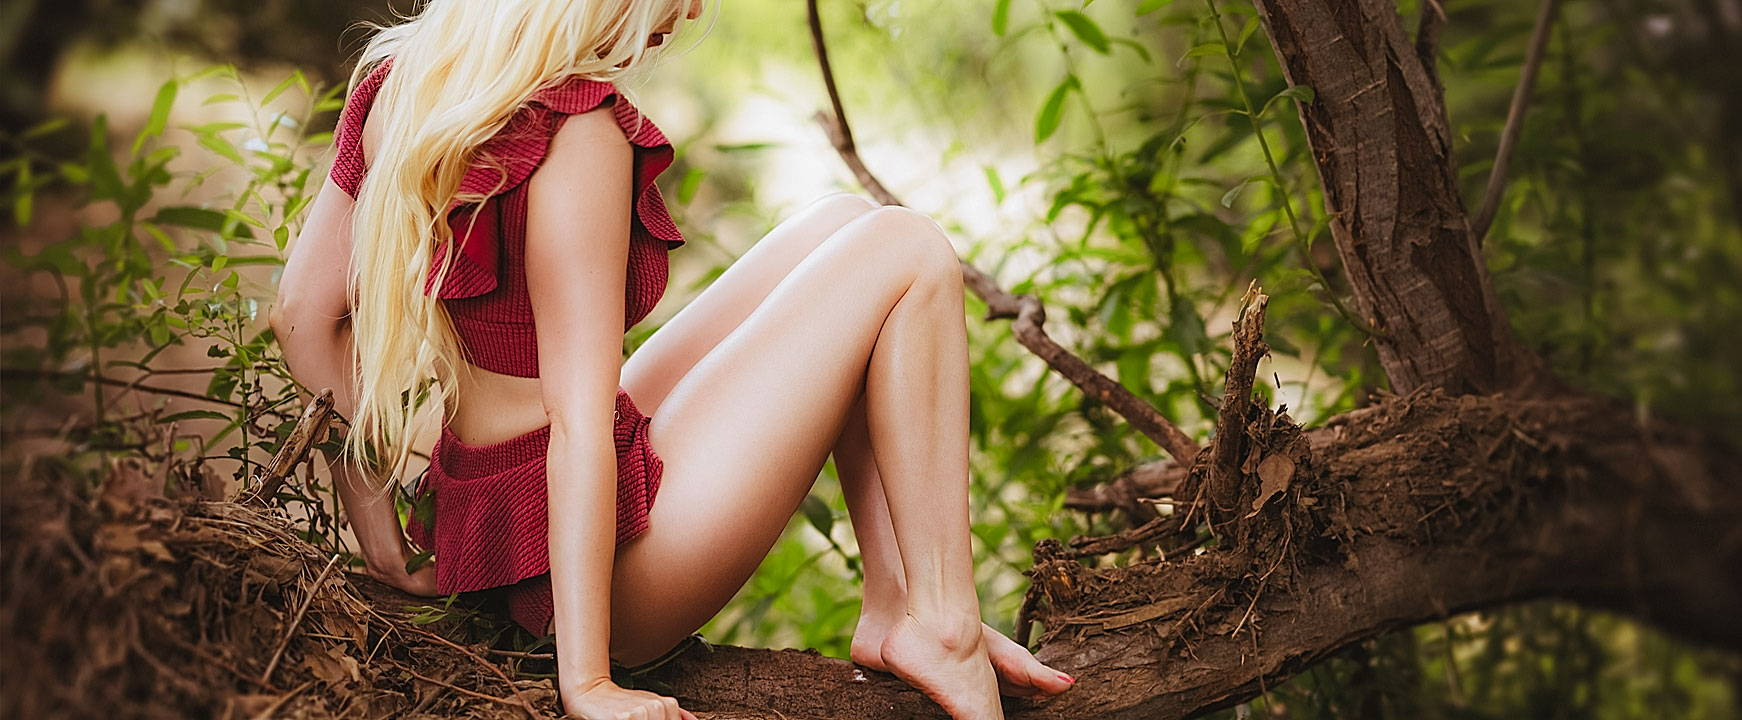 long blonde hair girl sitting on a tree in red ruffled bikini